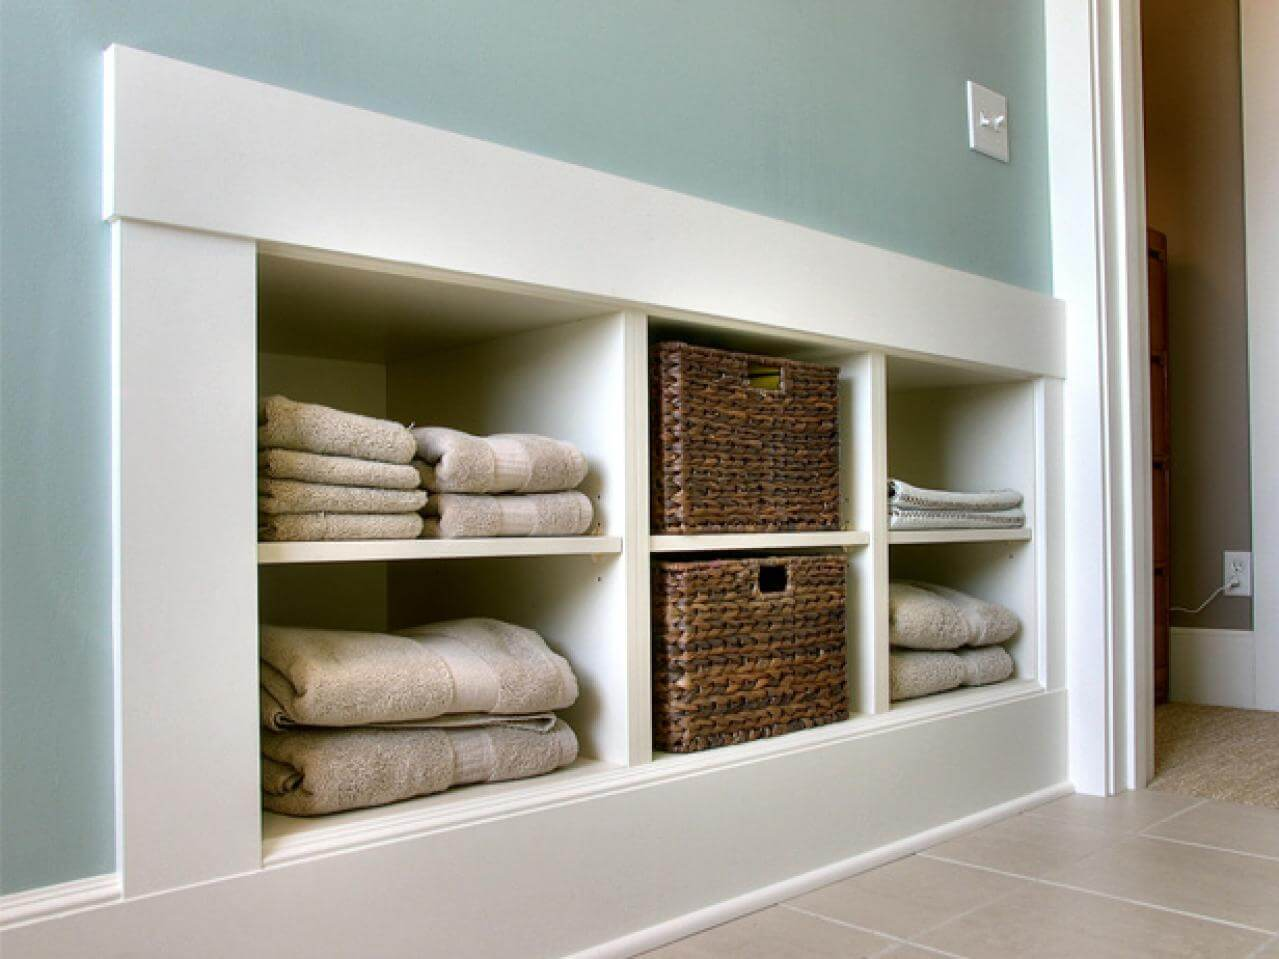 Built in bathroom storage - Built Ins And Baskets For Pretty Bathroom Storage